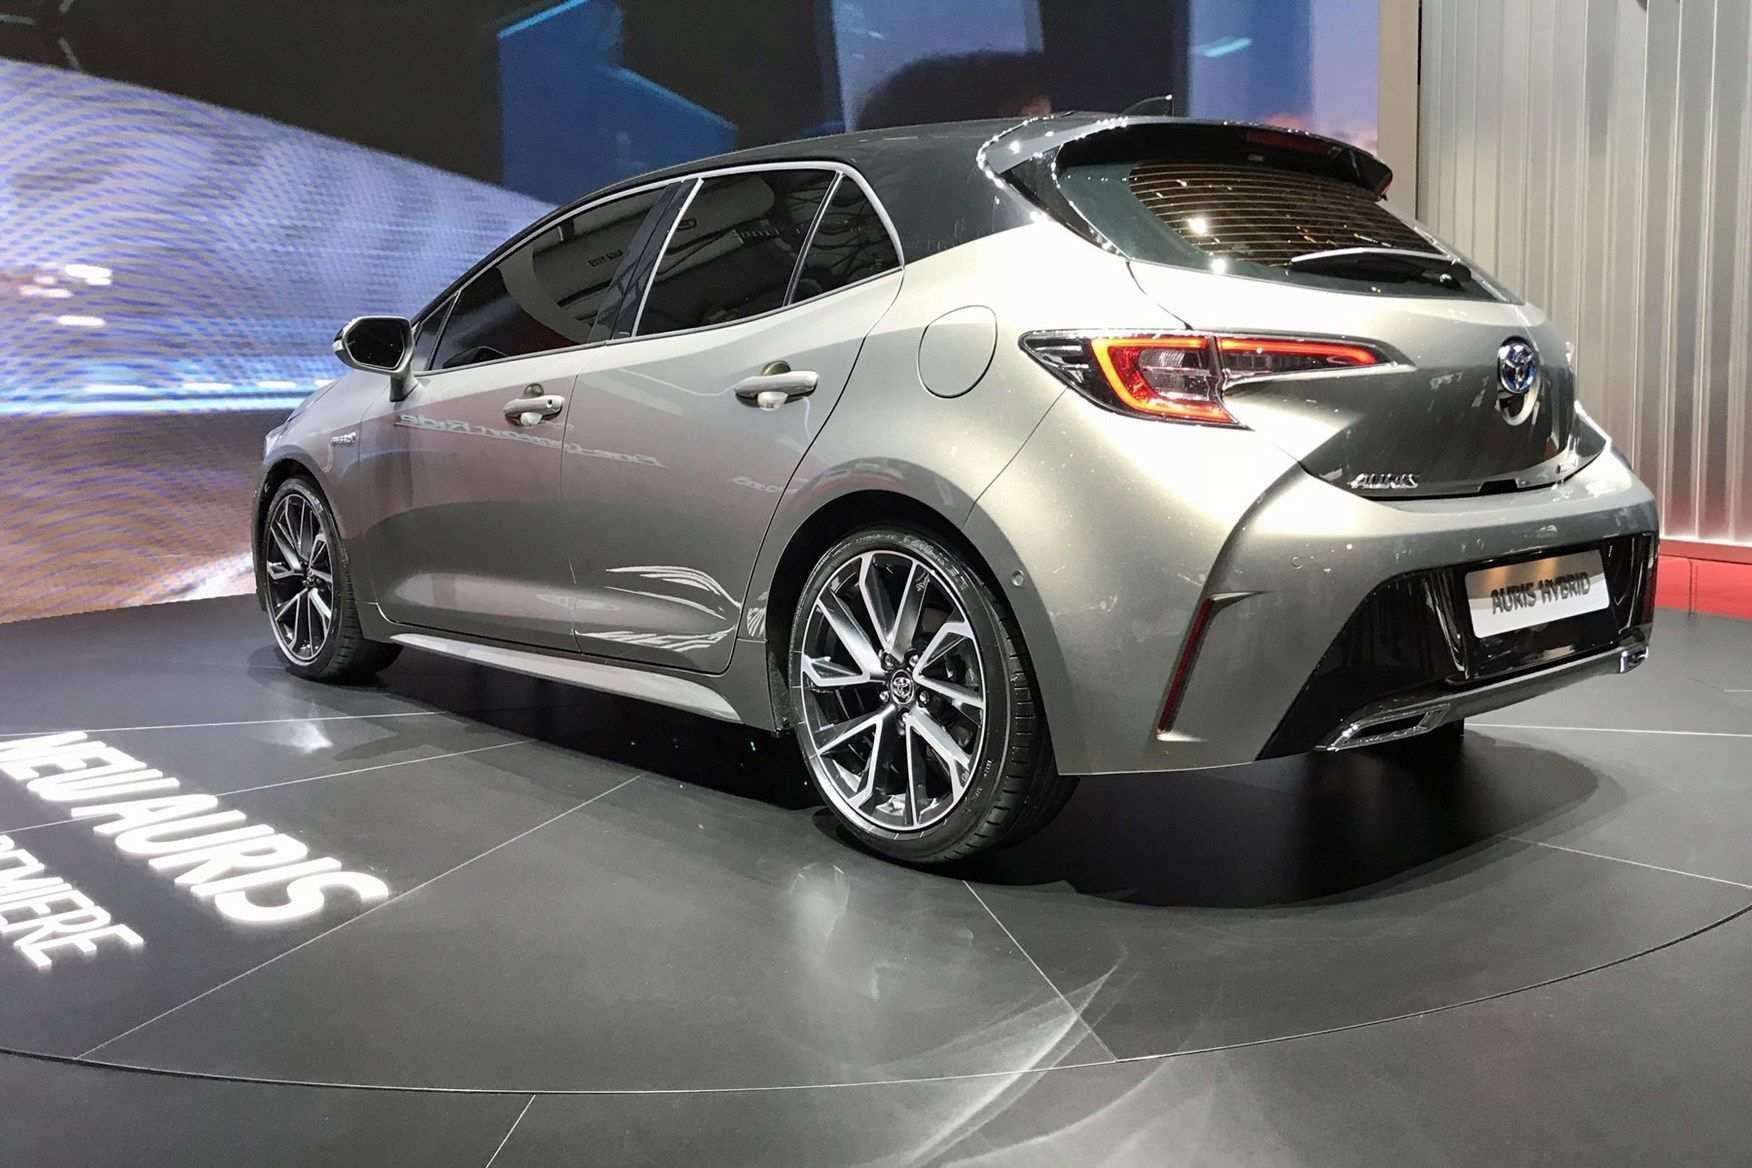 31 Great New Toyota Bursaries 2019 Review And Release Date Style for New Toyota Bursaries 2019 Review And Release Date